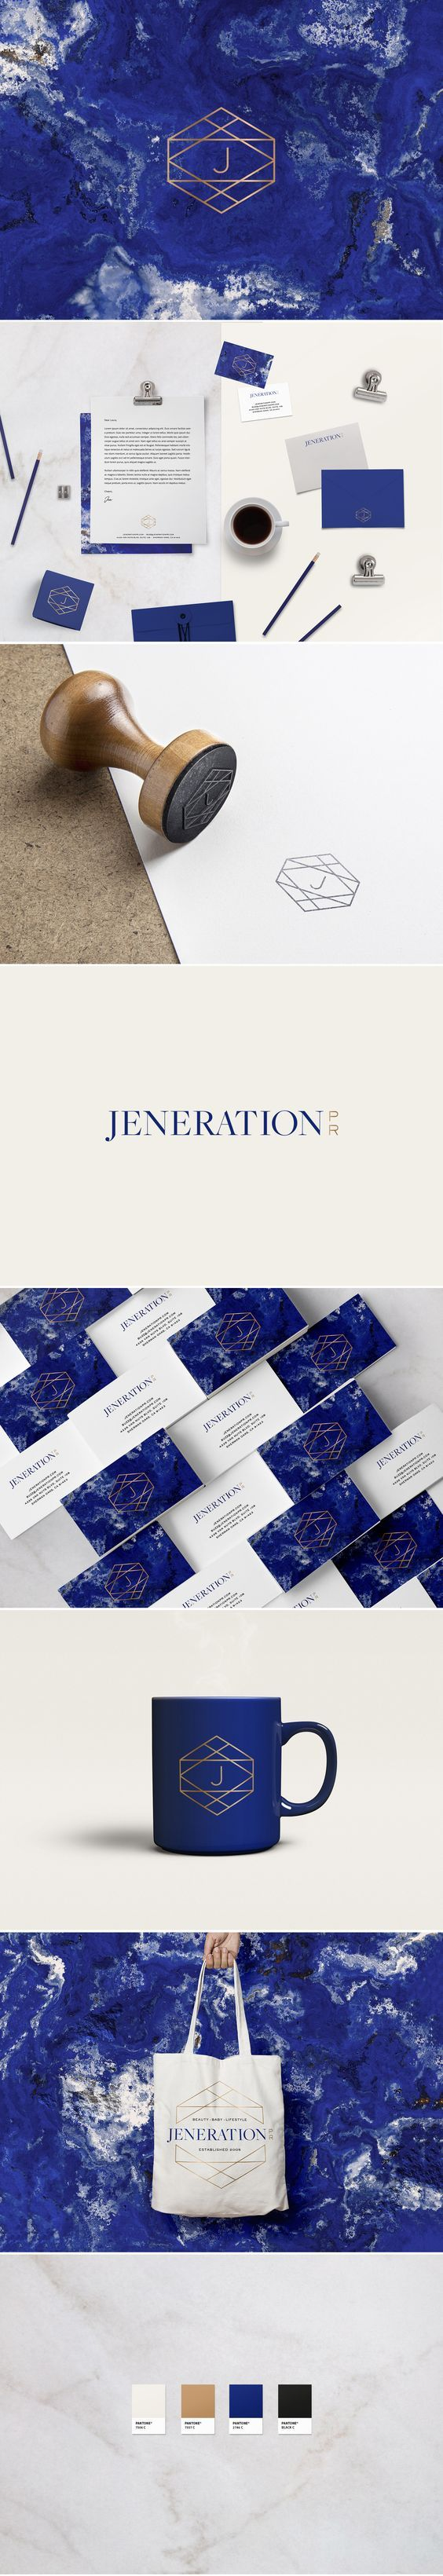 Jeneration PR Firm Branding by We Are Branch   Fivestar Branding Agency – Design and Branding Agency & Curated Inspiration Gallery